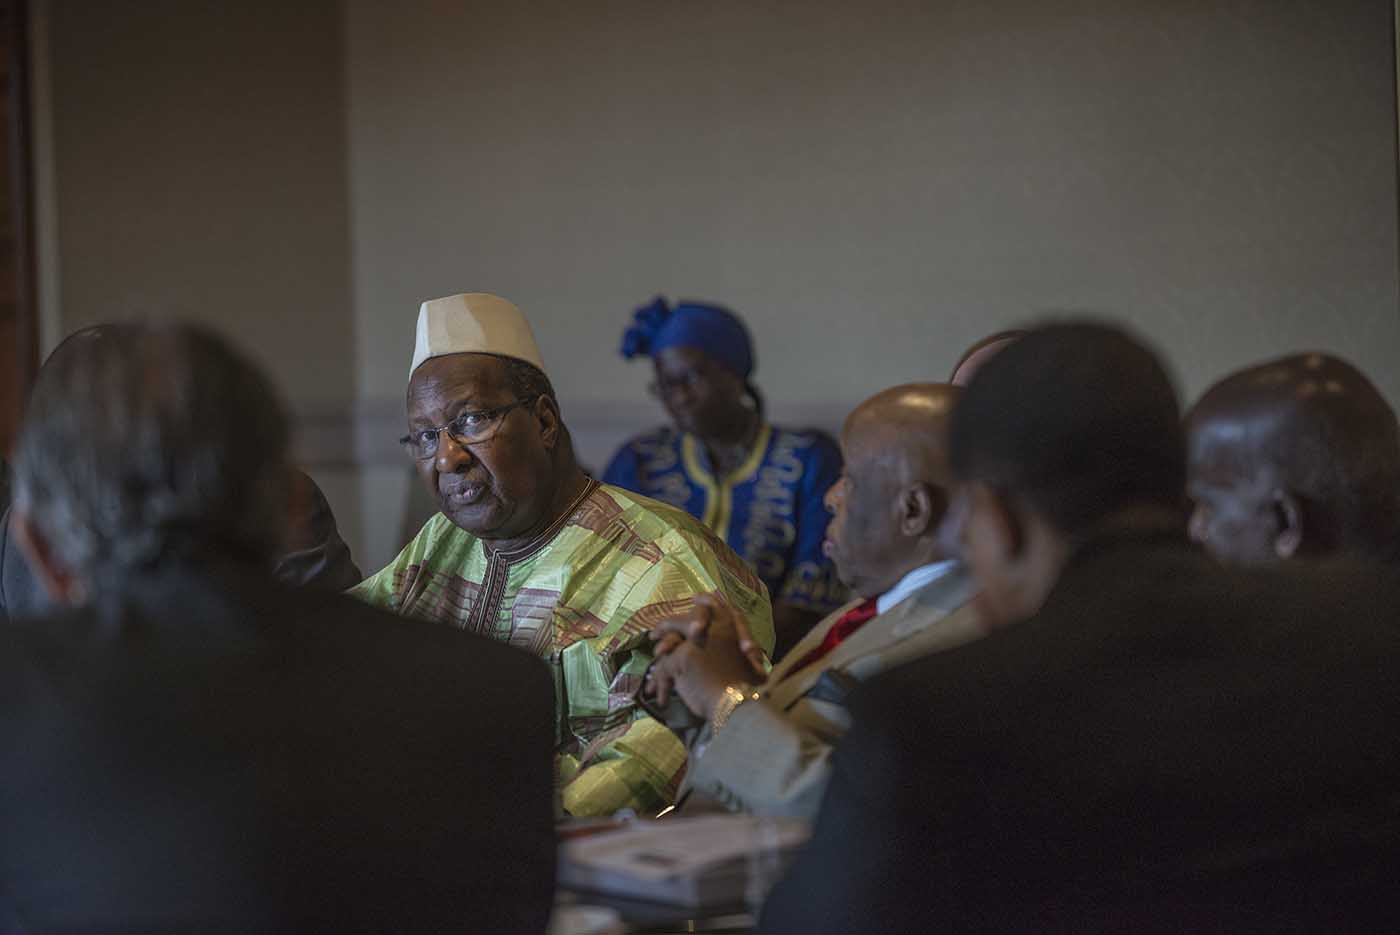 The former President of Mali, Alpha Oumar Konaré, at the board meeting of the Champions.